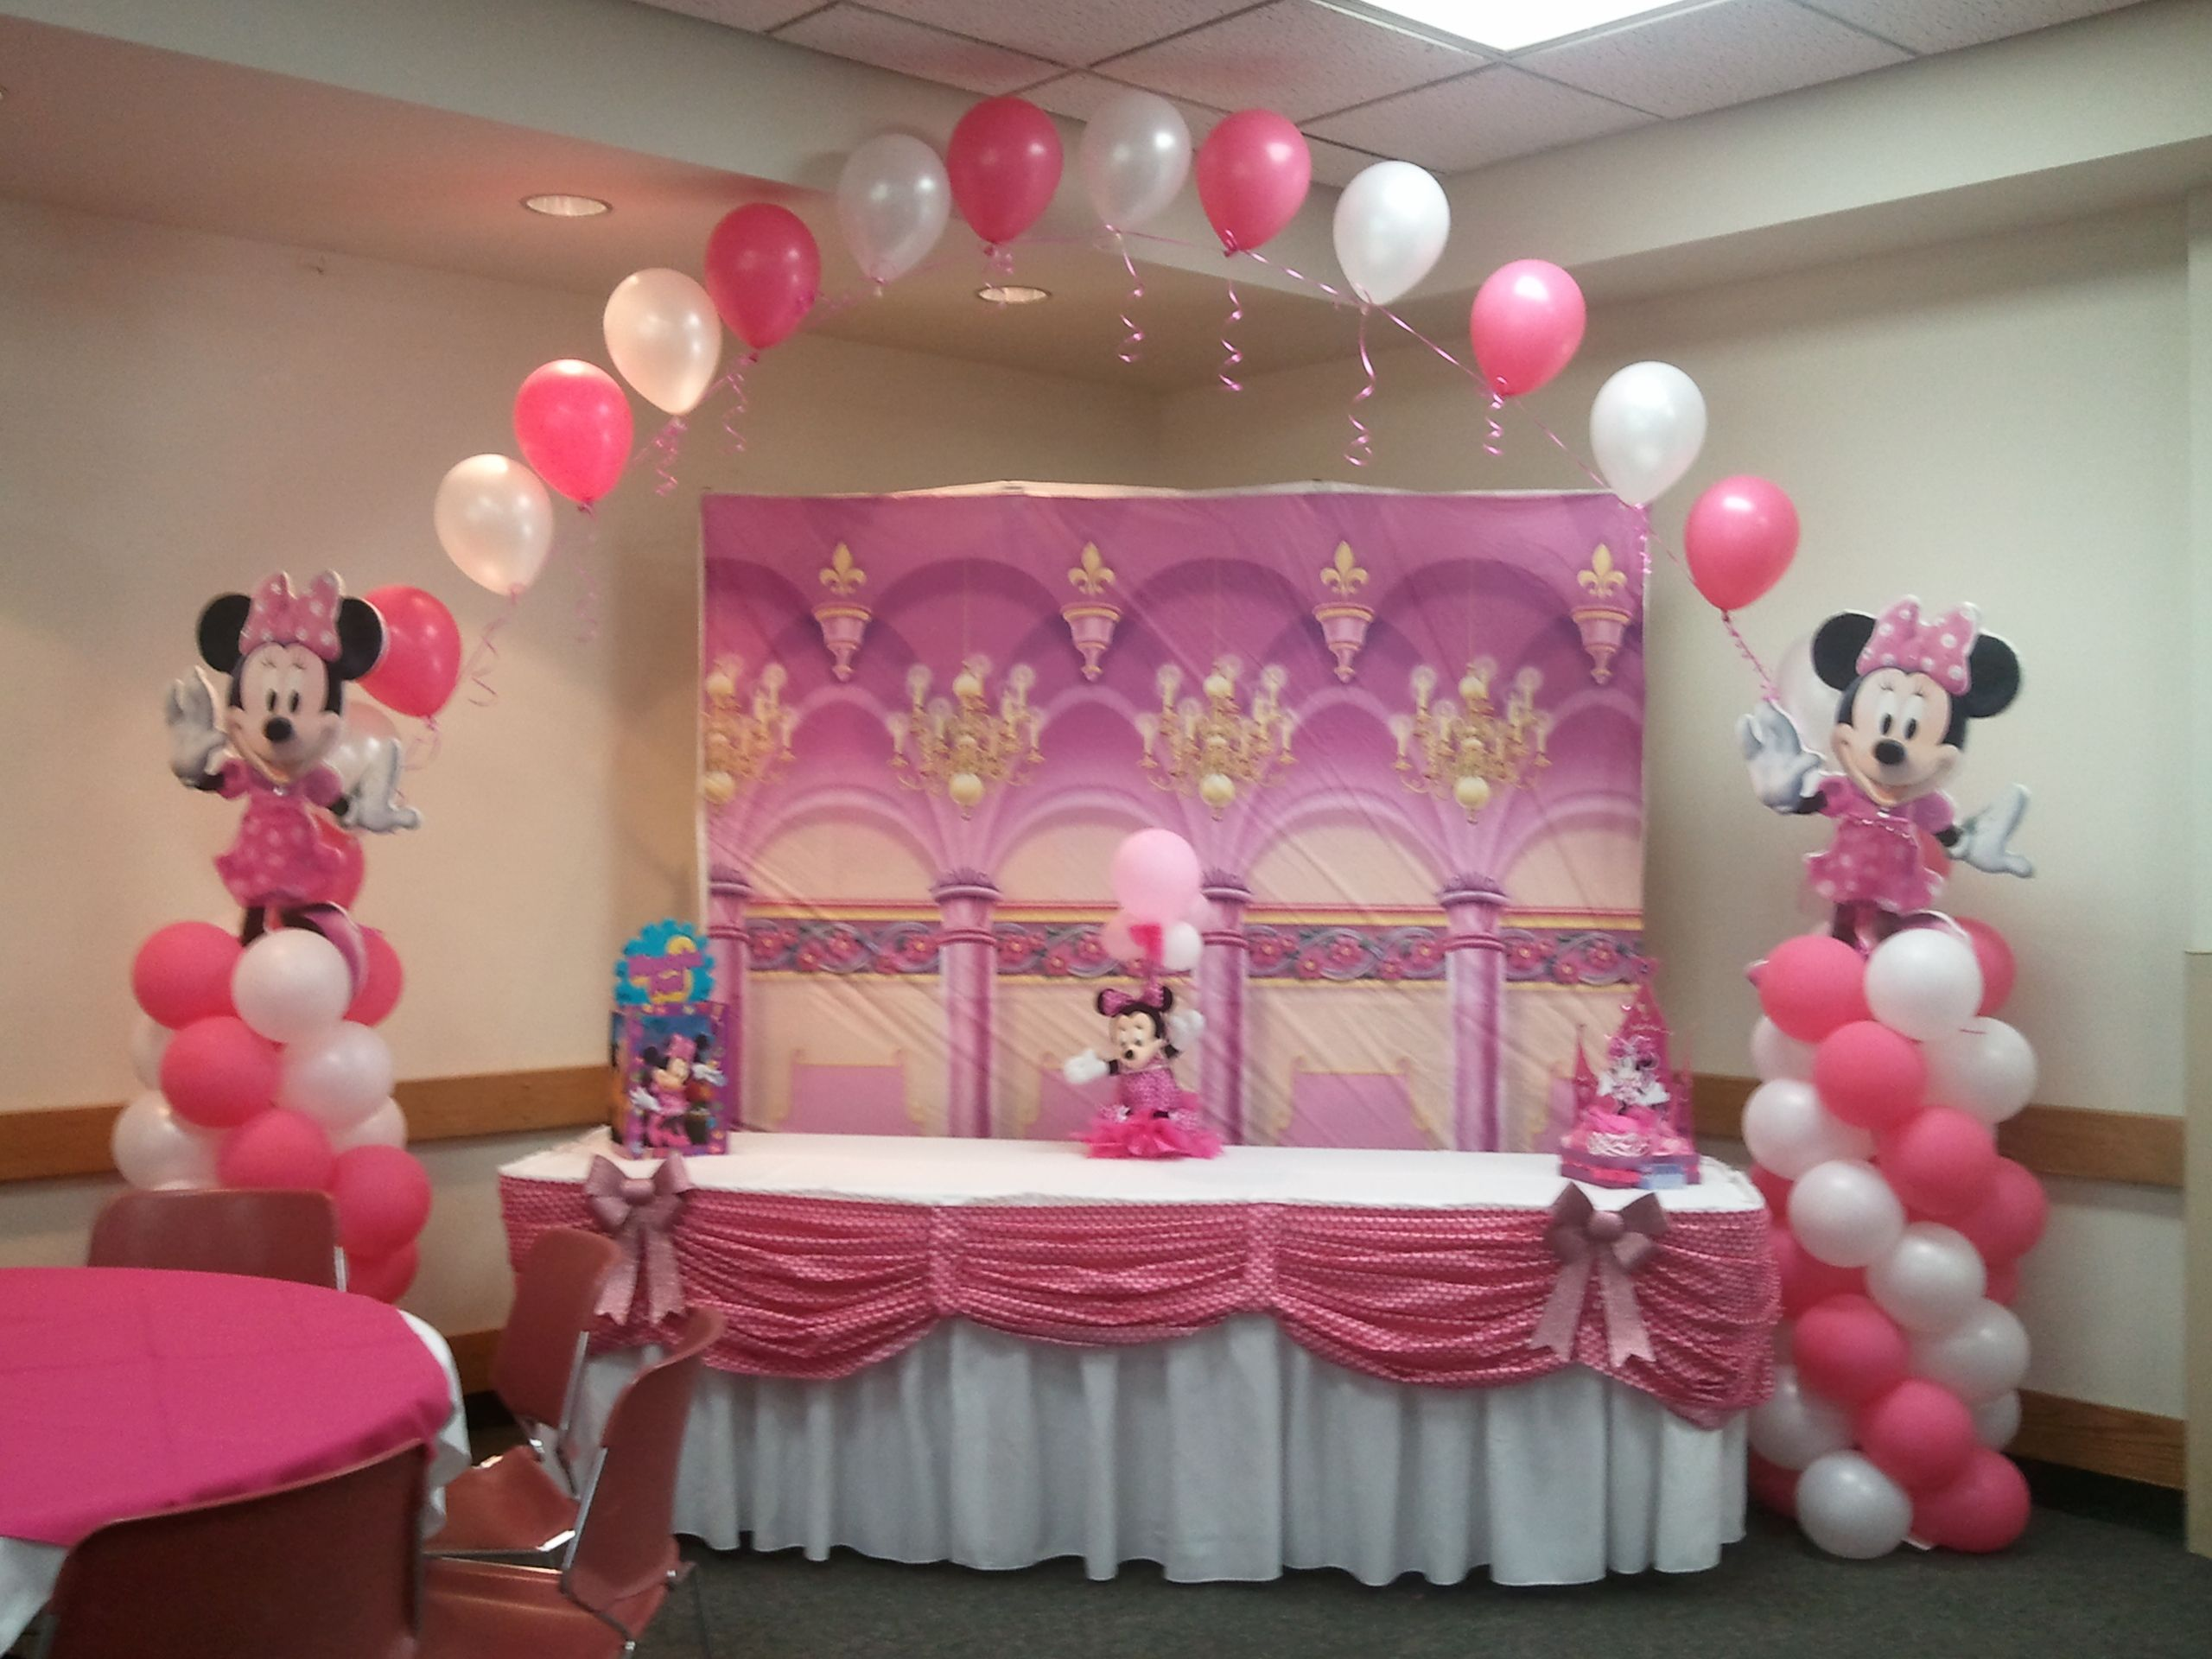 Decoraciones De Fiestas Infantiles Mesa De Pastel Minnie Mouse Party Time Pinterest